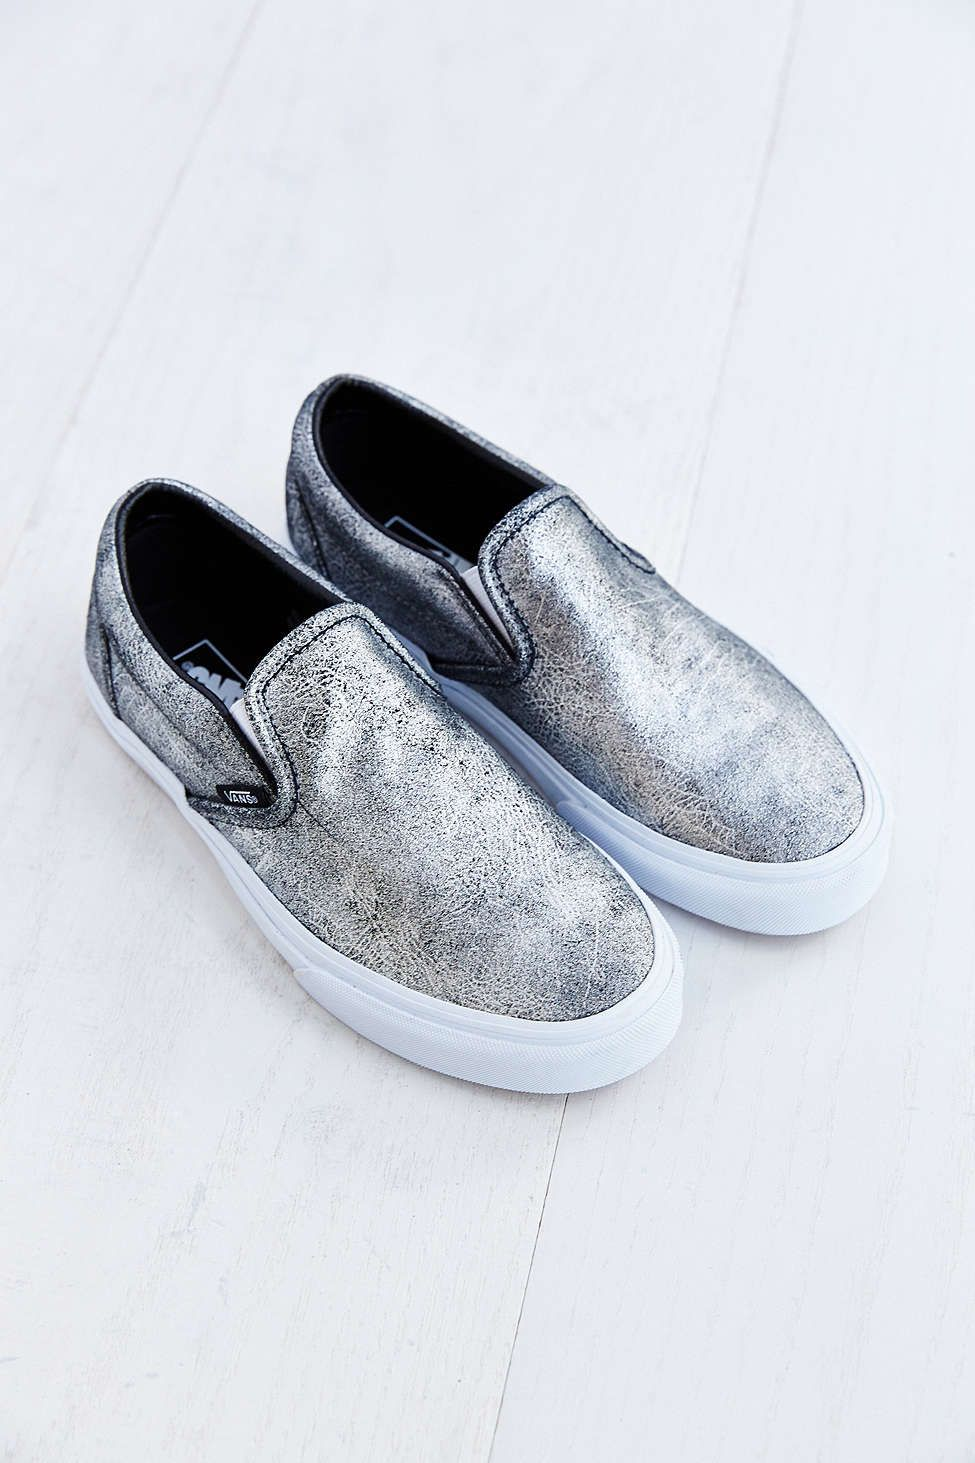 Extremamente Vans Metallic Silver Women's Slip-On Sneaker | Attire | Pinterest  PD93